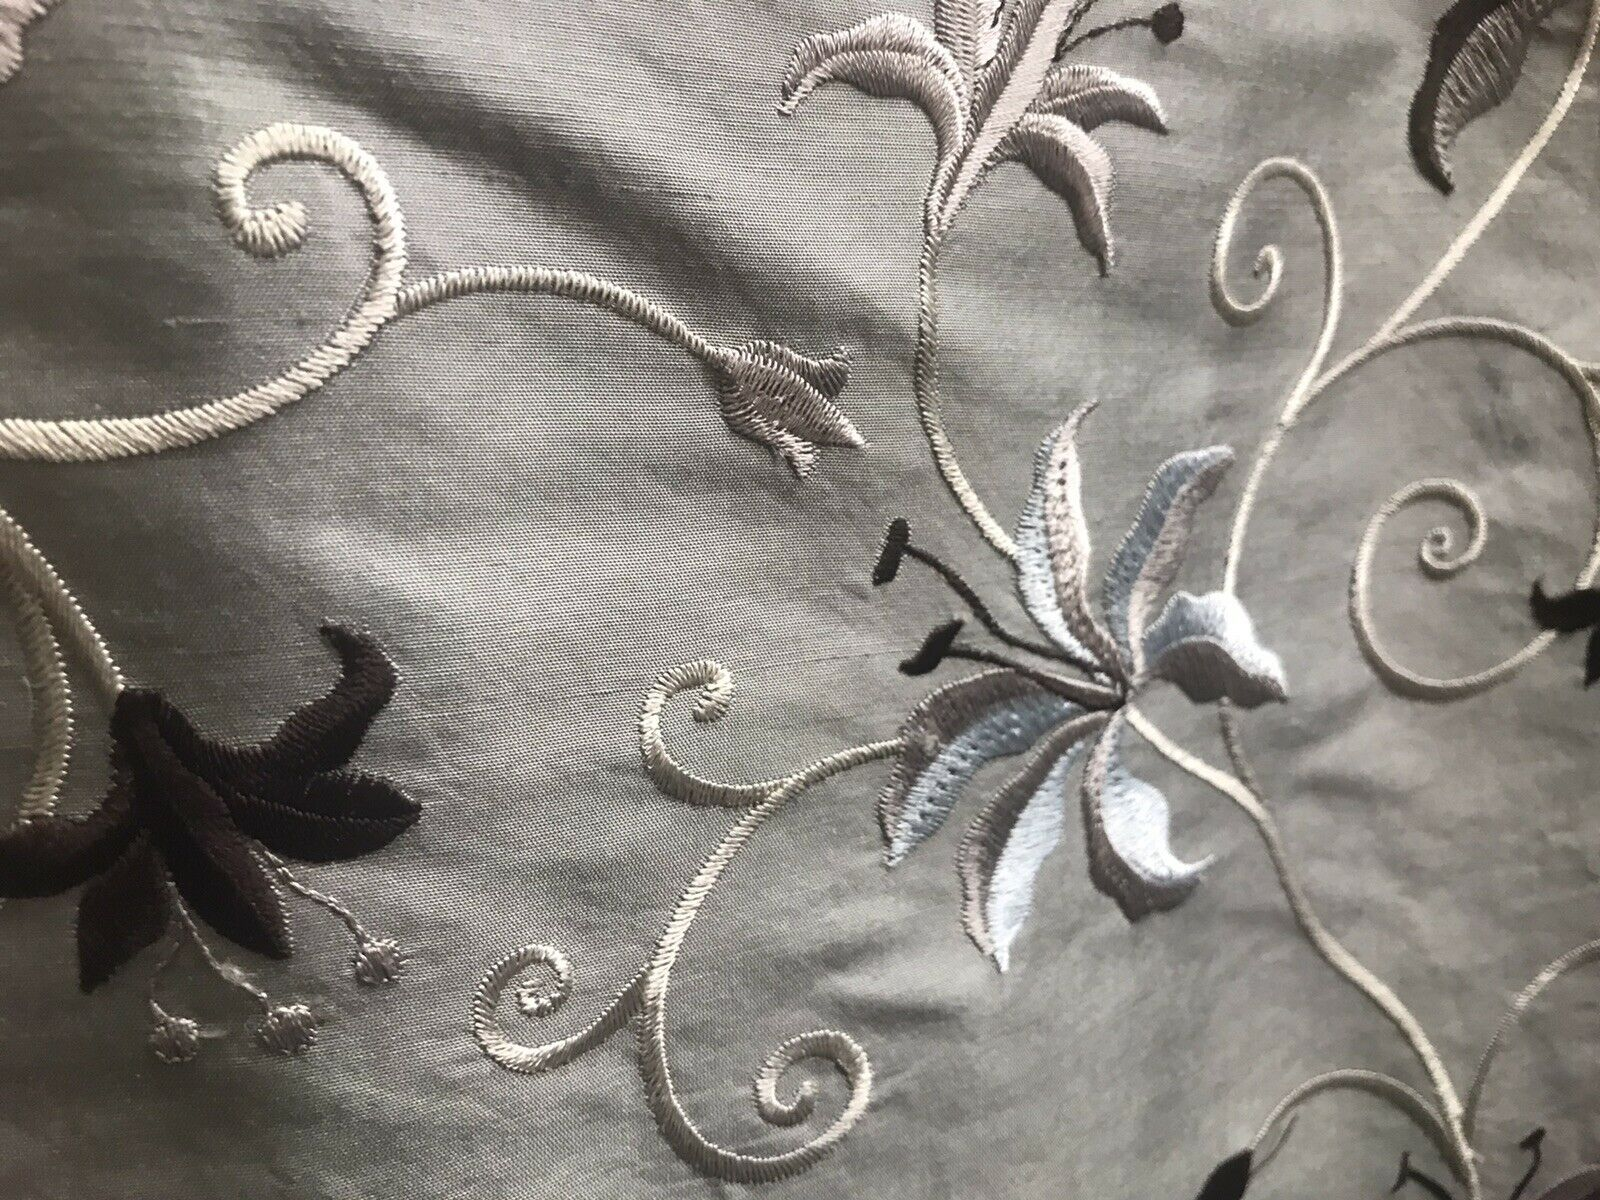 NEW! 100% Silk Embroidered Dupioni Taffeta Fabric - Floral Silver Gray Floral